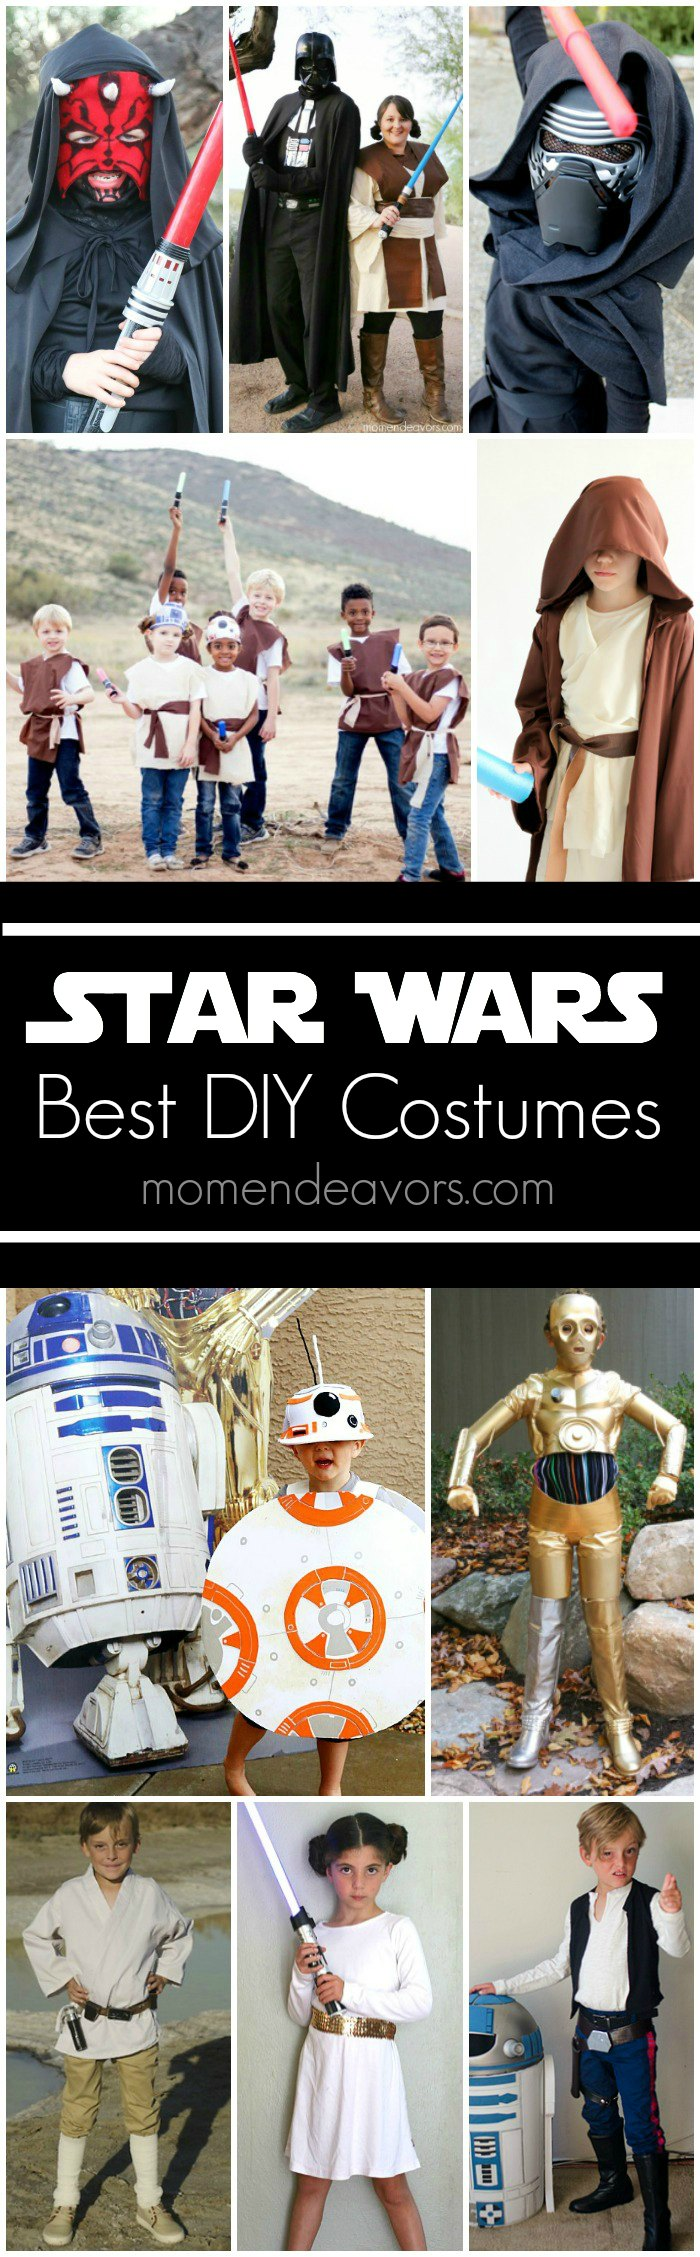 best-diy-star-wars-costumes